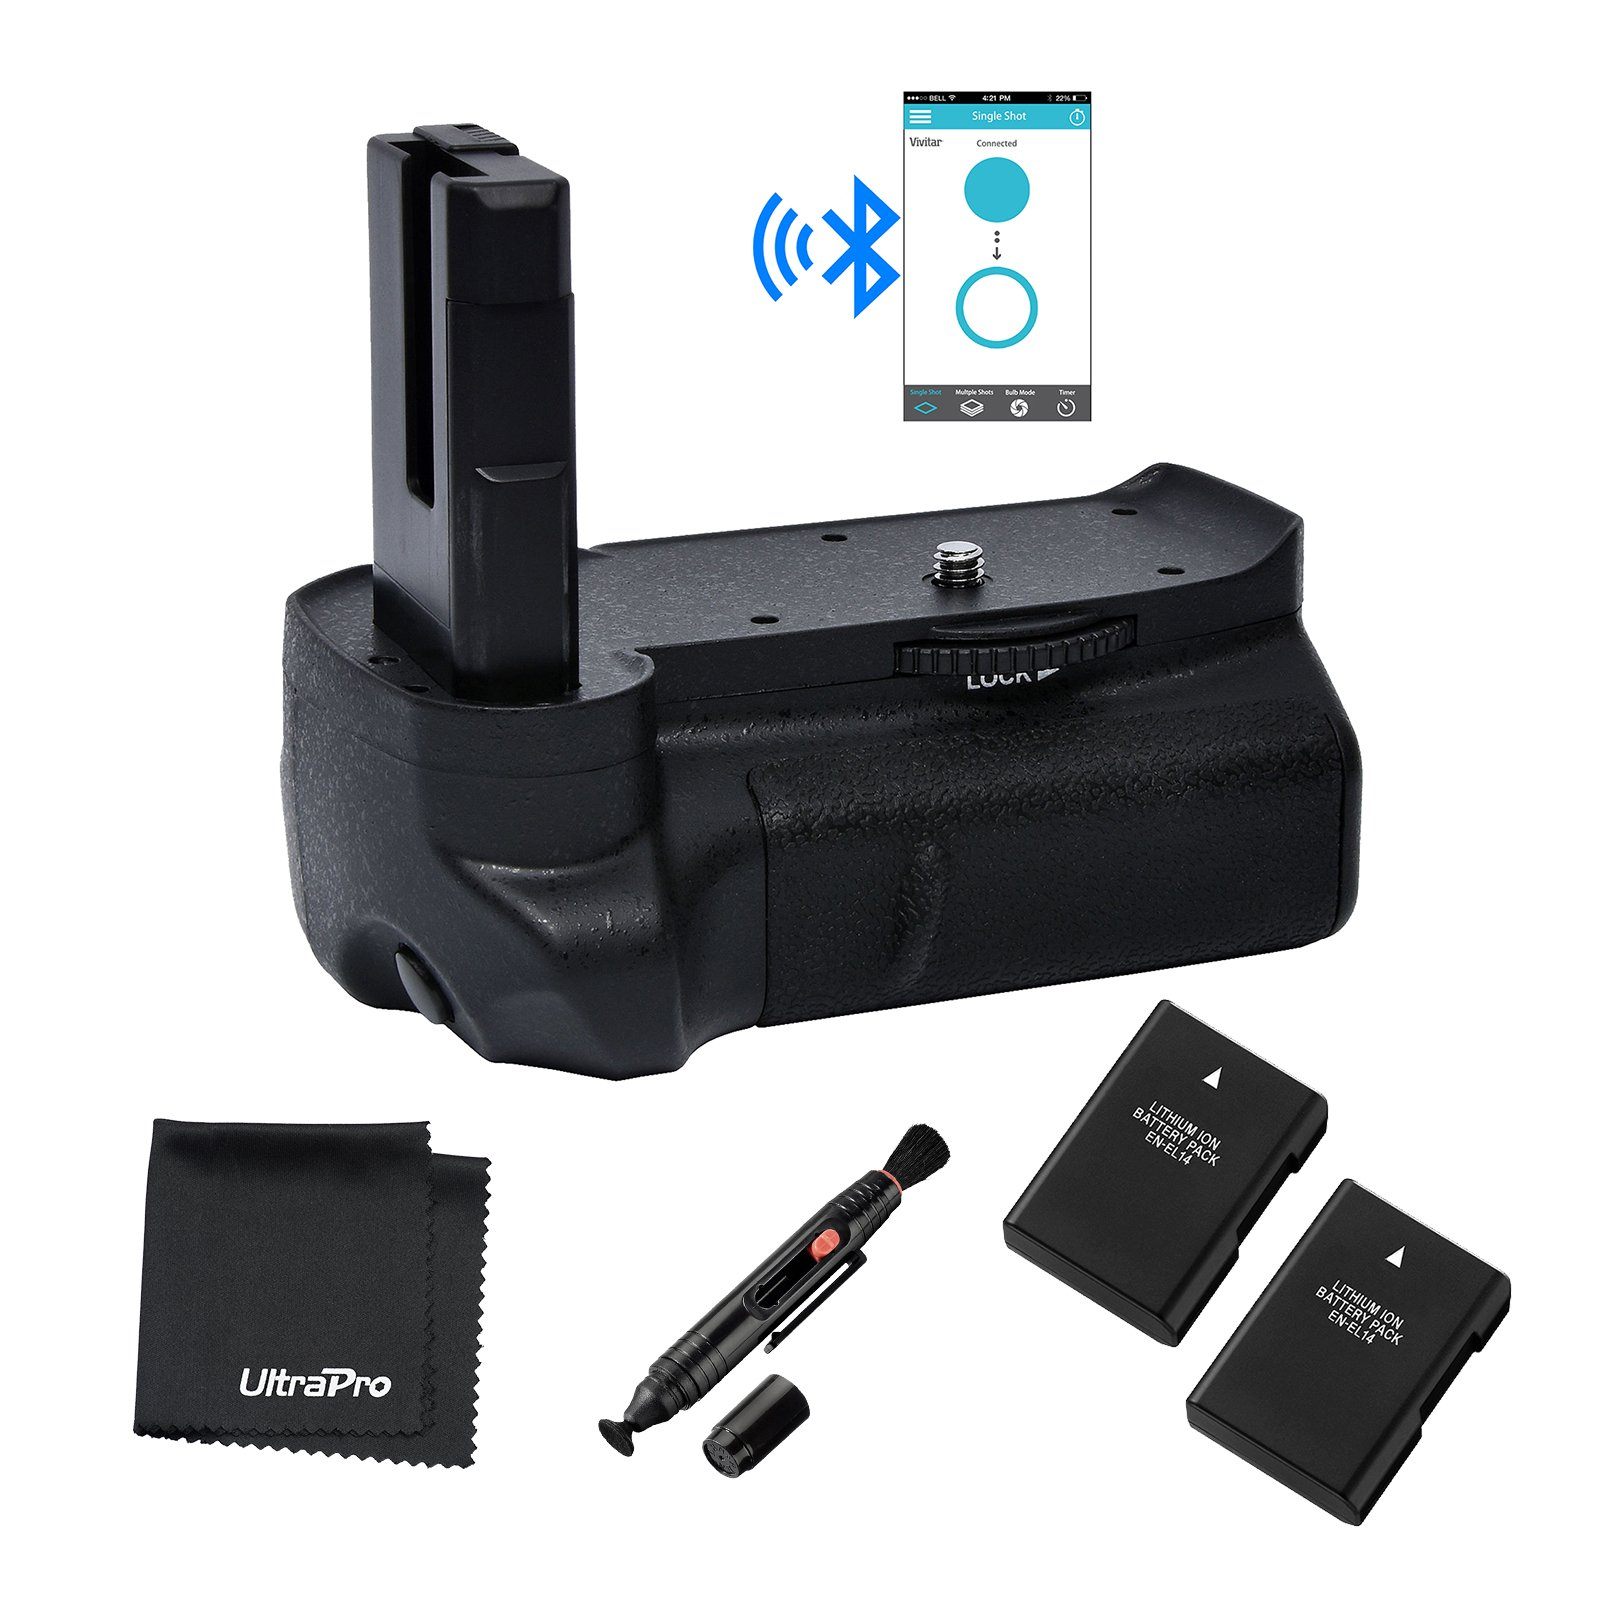 Bluetooth Battery Grip Bundle F/ Nikon D3100, D3200, D3300: Includes Vertical Battery Grip, 2-Pk EN-EL14 Extended Replacement Batteries, Microfiber Cleaning Cloth, Lens Cleaning Pen by UltraPro